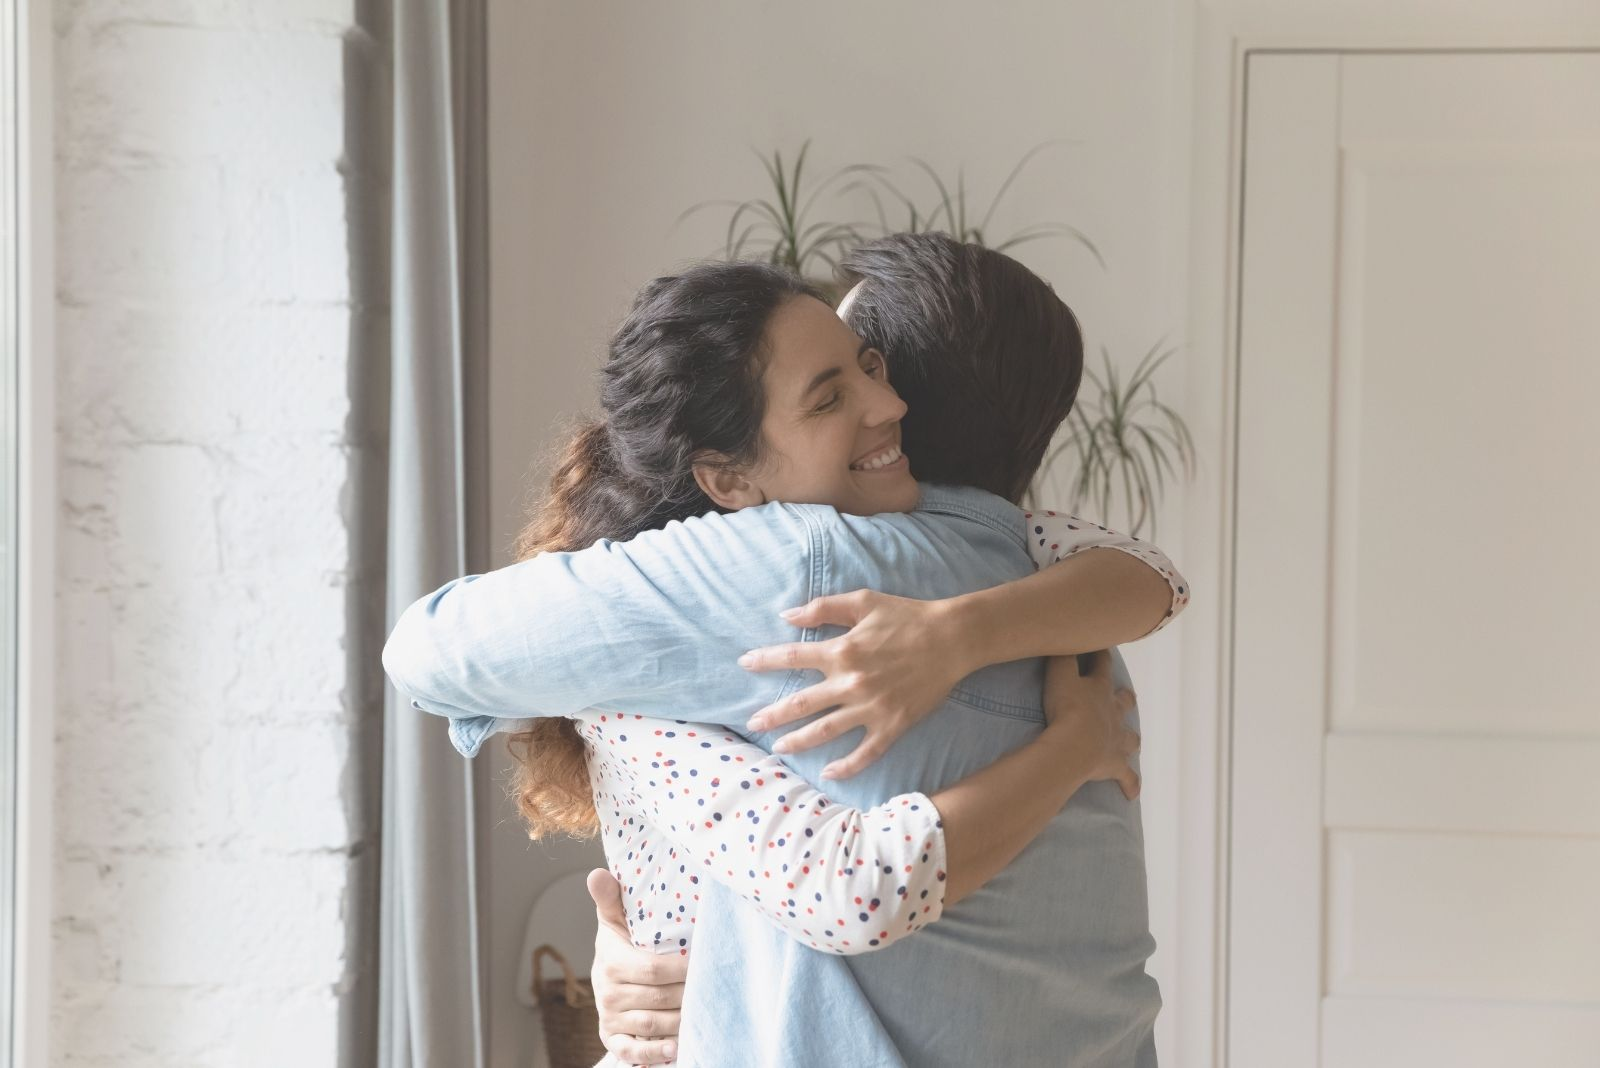 happy couple embracing each other after reconciling inside the house